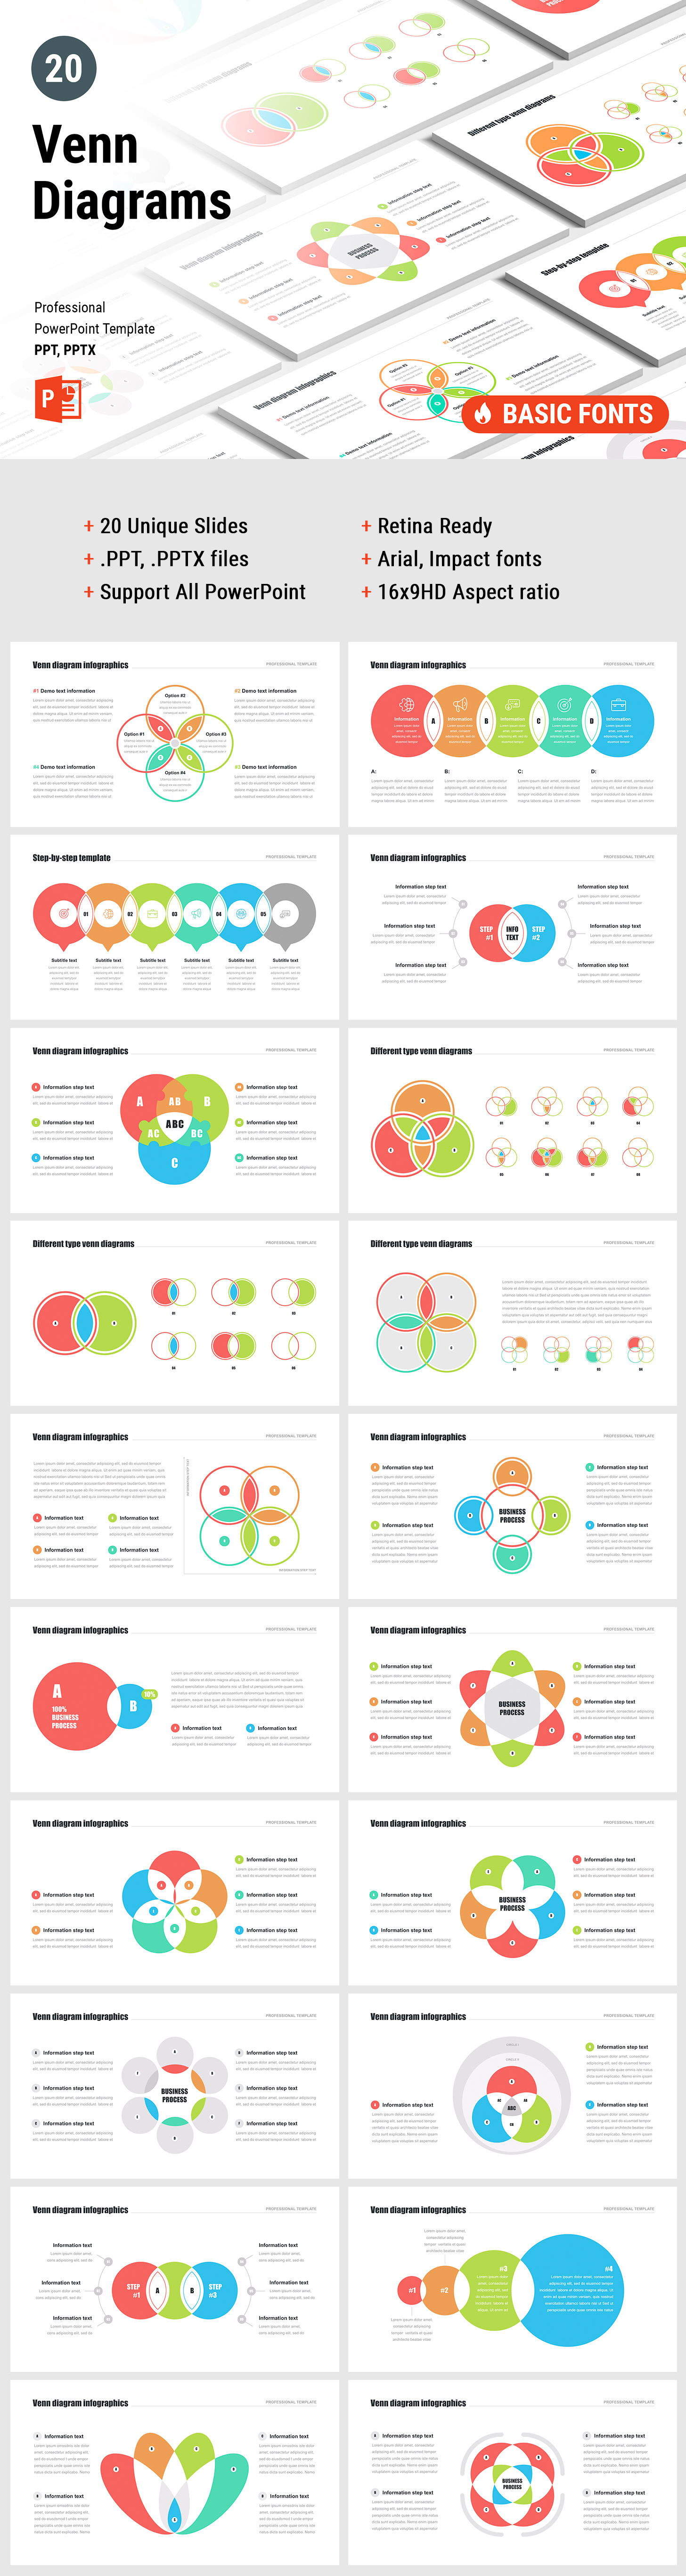 venn-diagram-powerpoint-template-pack